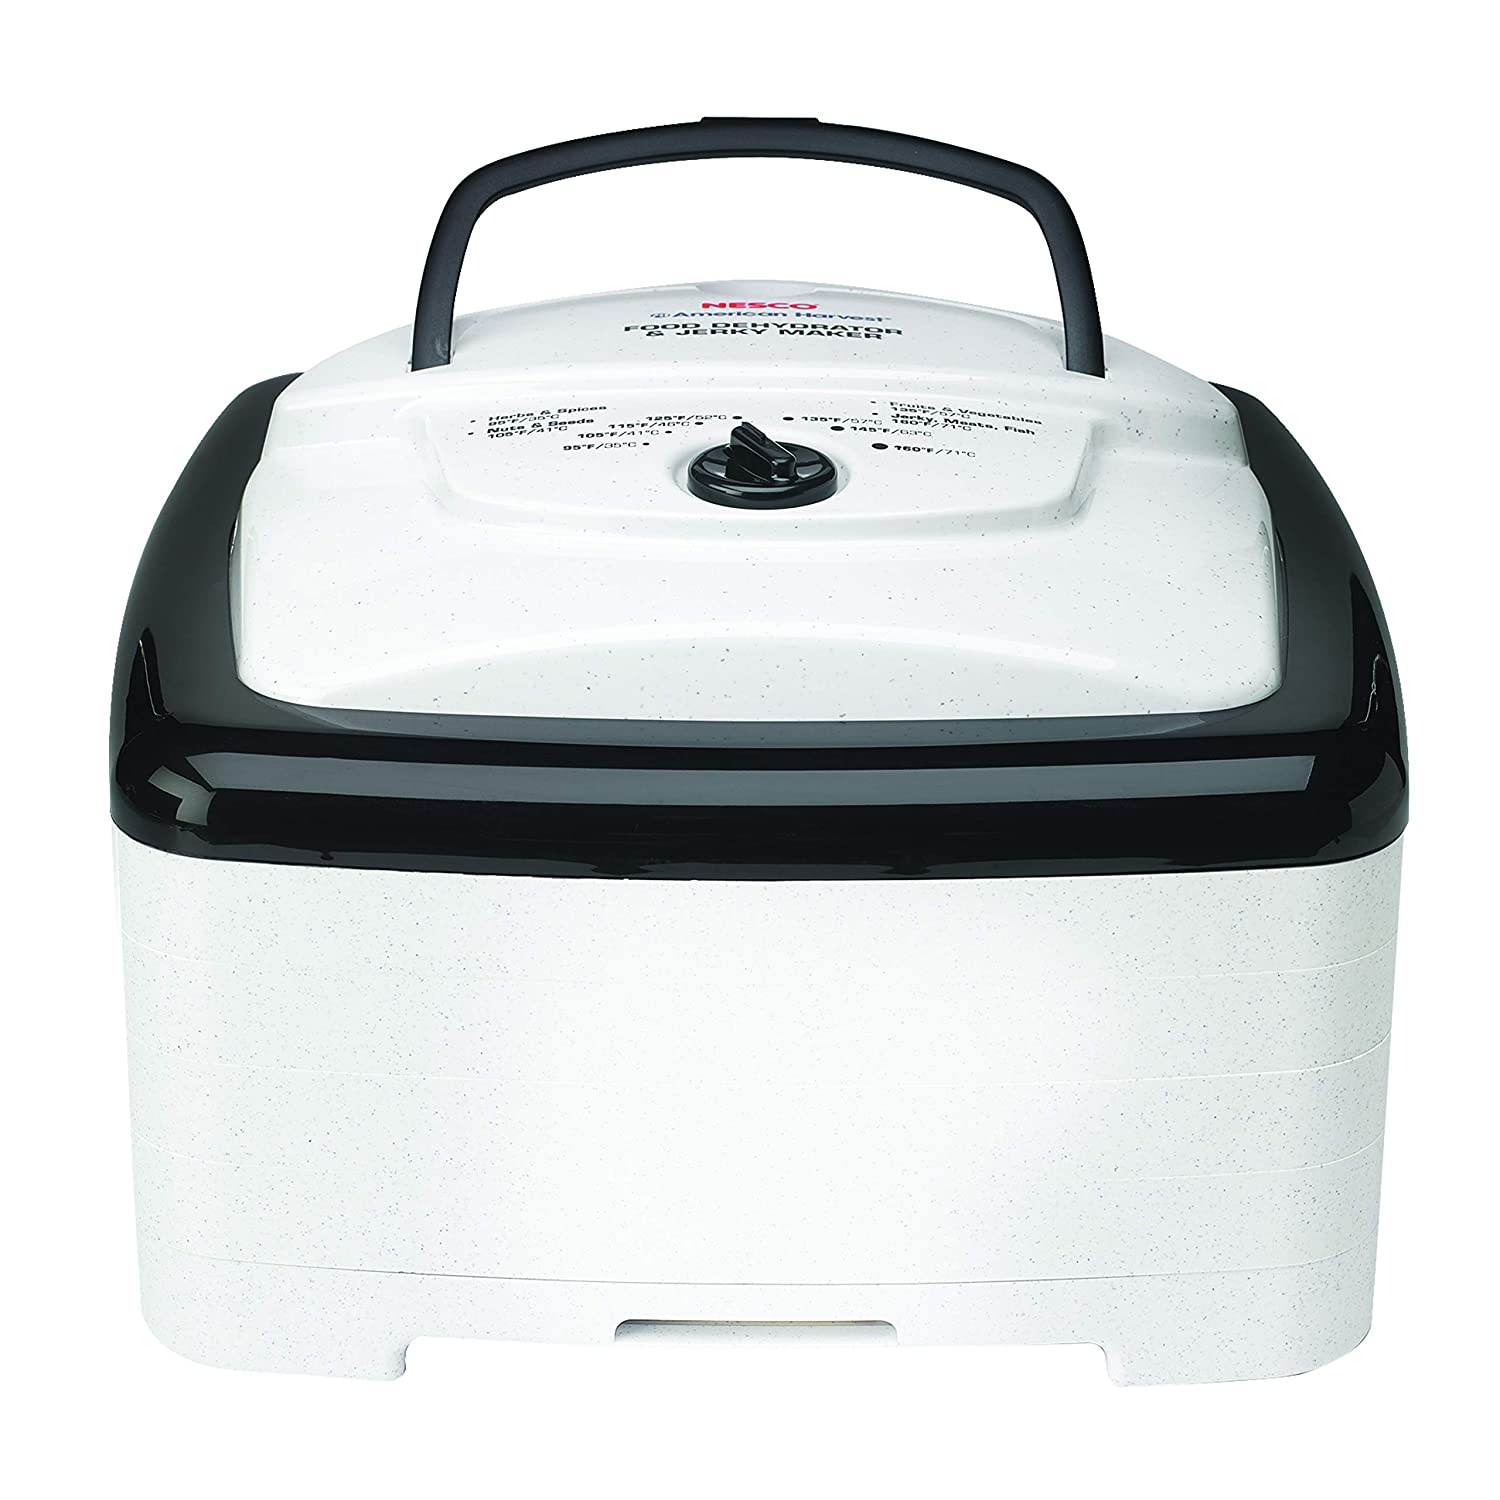 NESCO FD-80A Square-Shaped cheap food Dehydrator, White Speckled, 700 watts